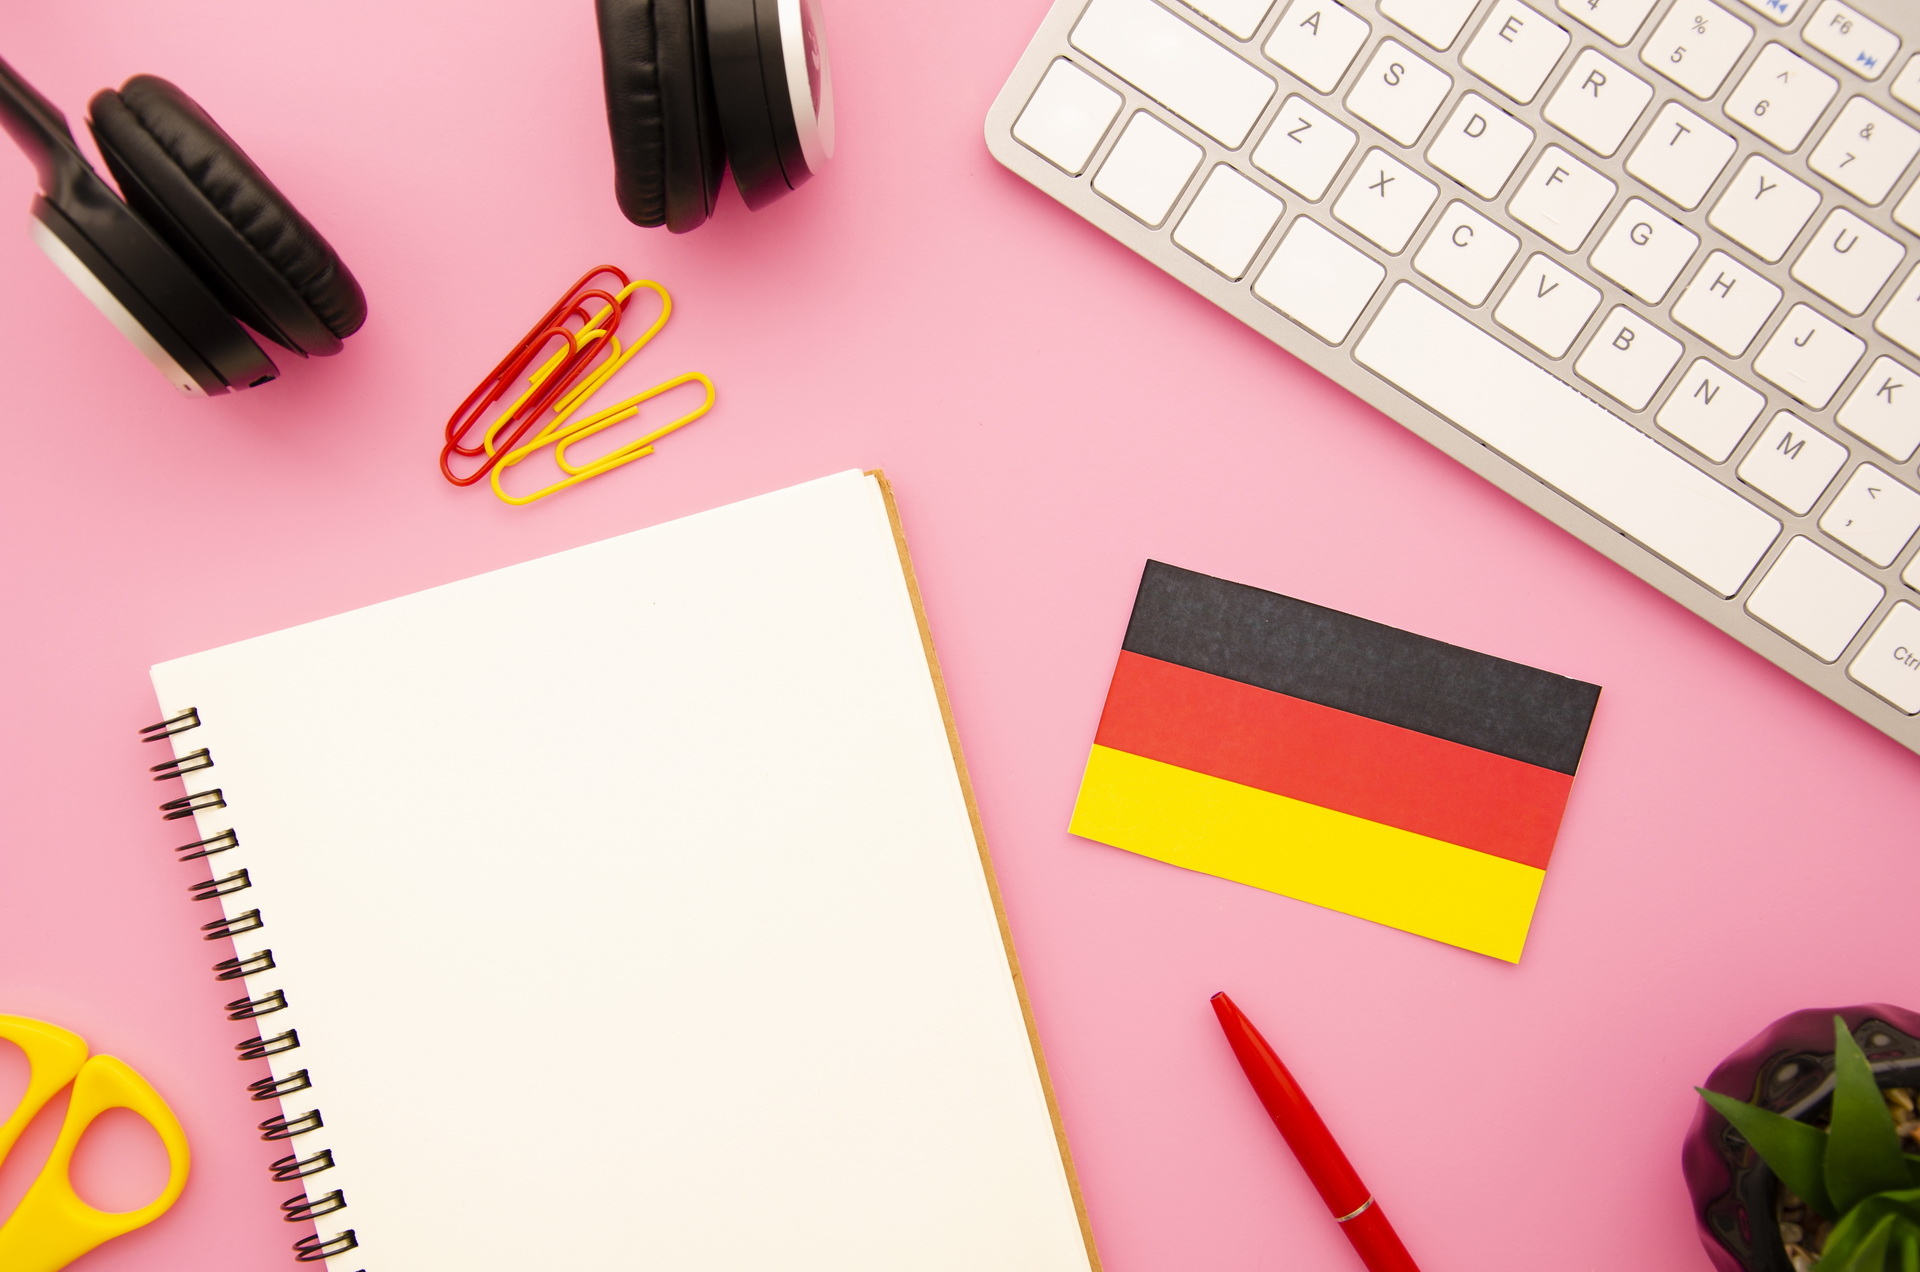 German language courses for beginners